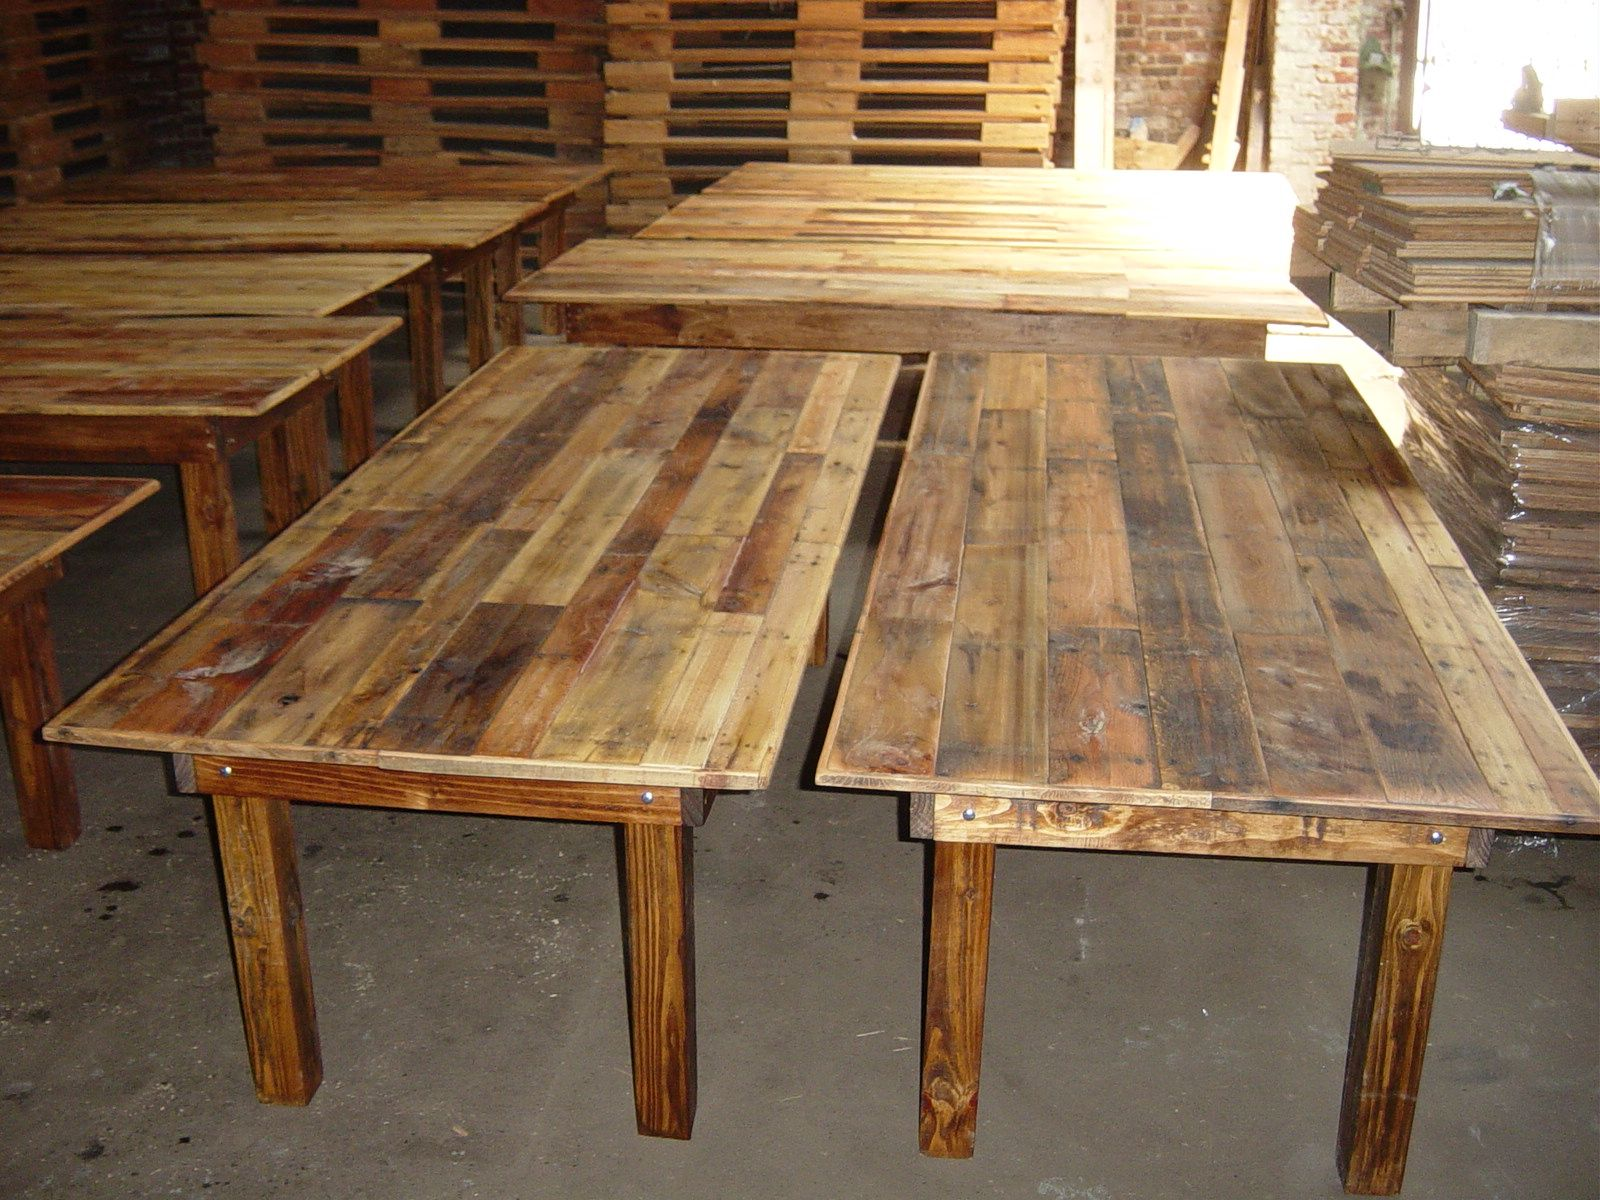 Outdoor Rustic Table Rustic Wooden Picnic Tables Wood Benches - Long picnic table for sale